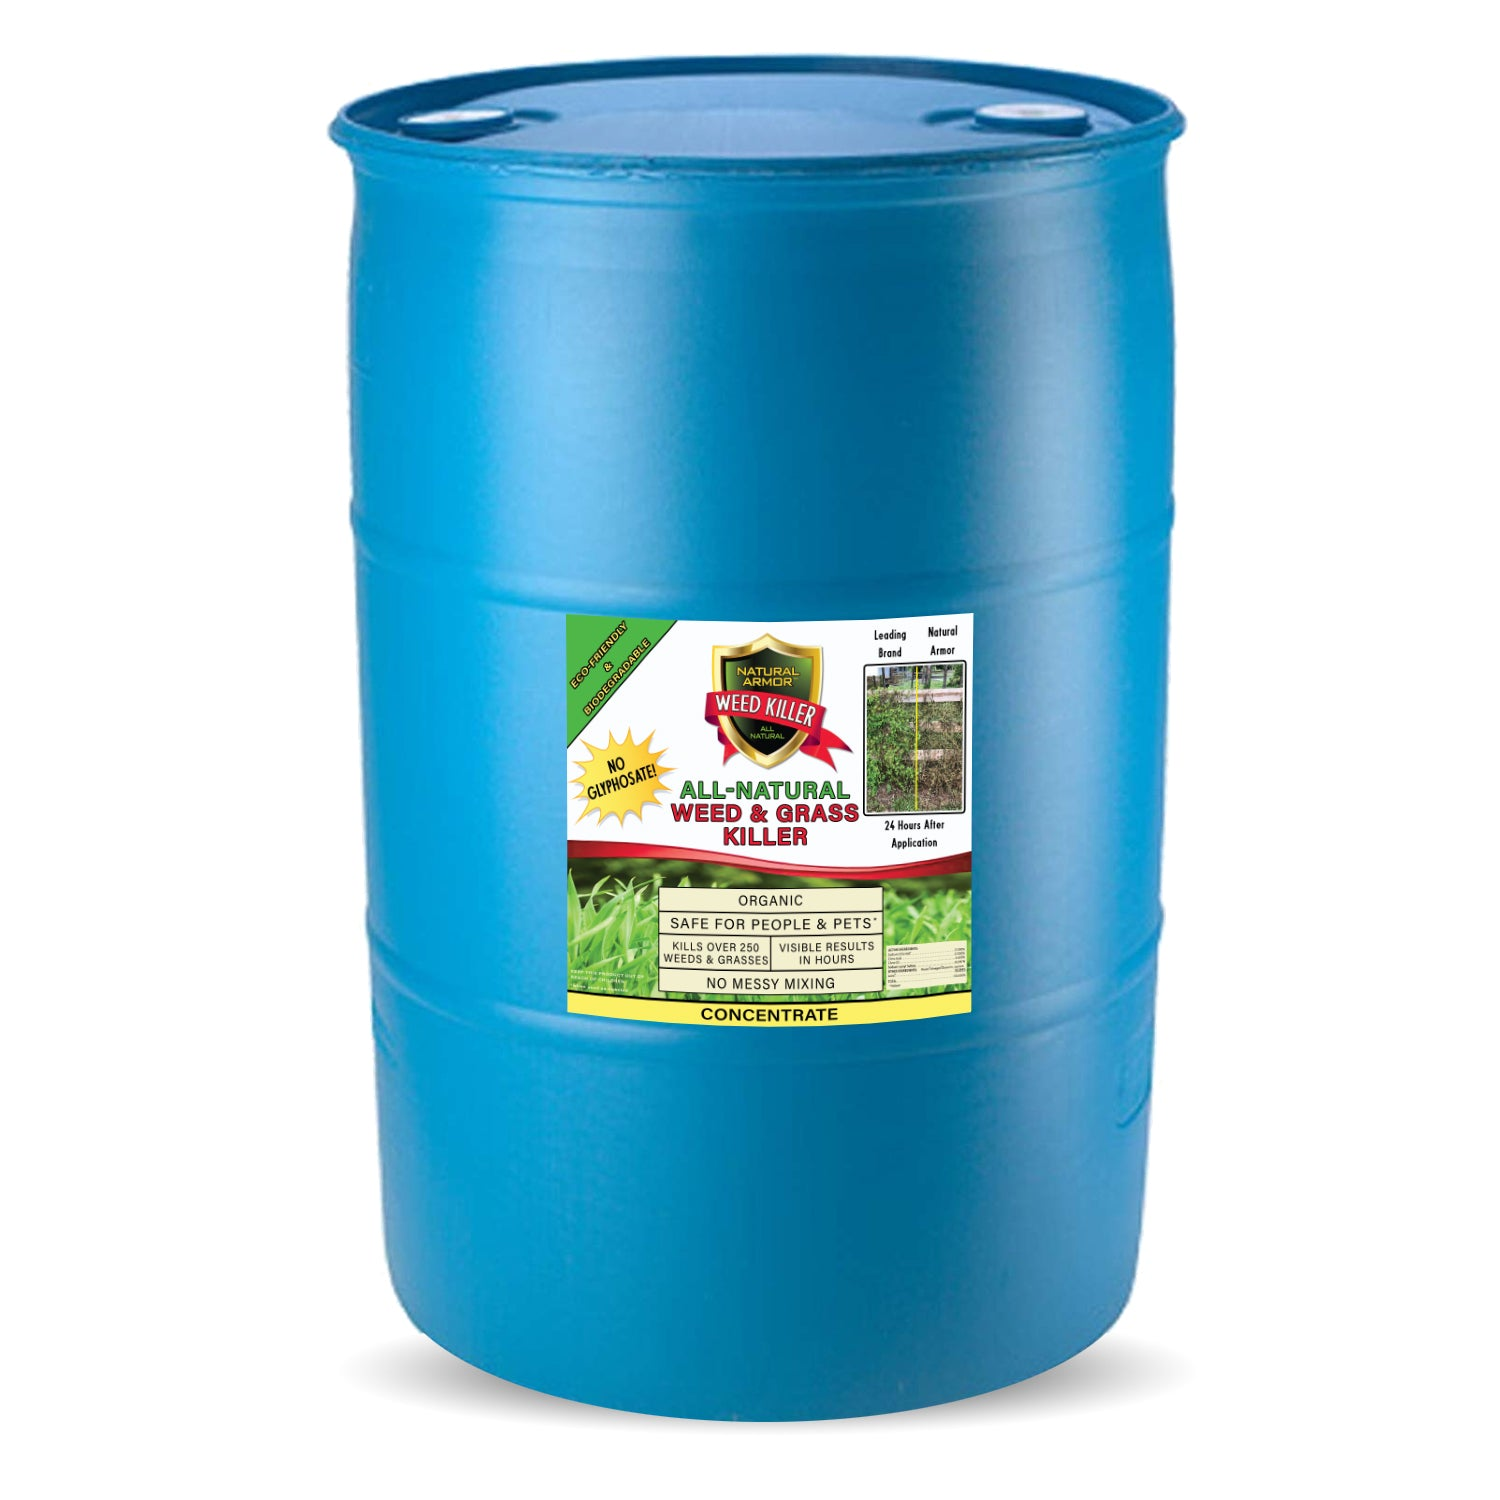 Natural Armor All-Natural Weed Killer — (1) 30 Gallons — 4-1 Concentrate